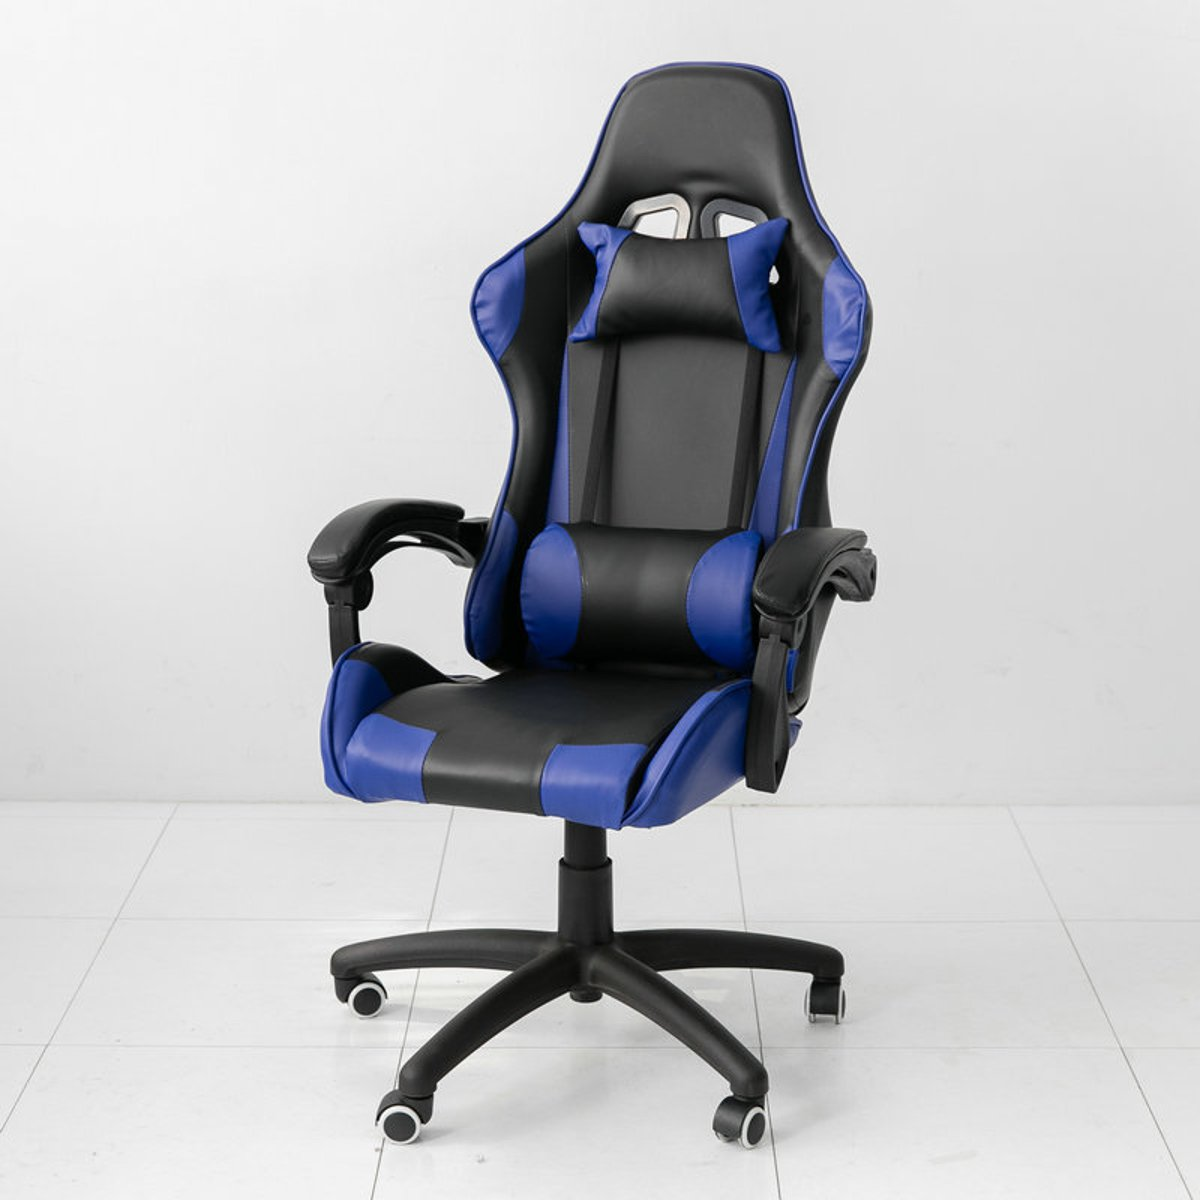 PU Leather Racing Chair Gaming Chair Adjustable High Back Ergonomic Recliner Seat Office Chairs Home Office Furniture 4 Colors